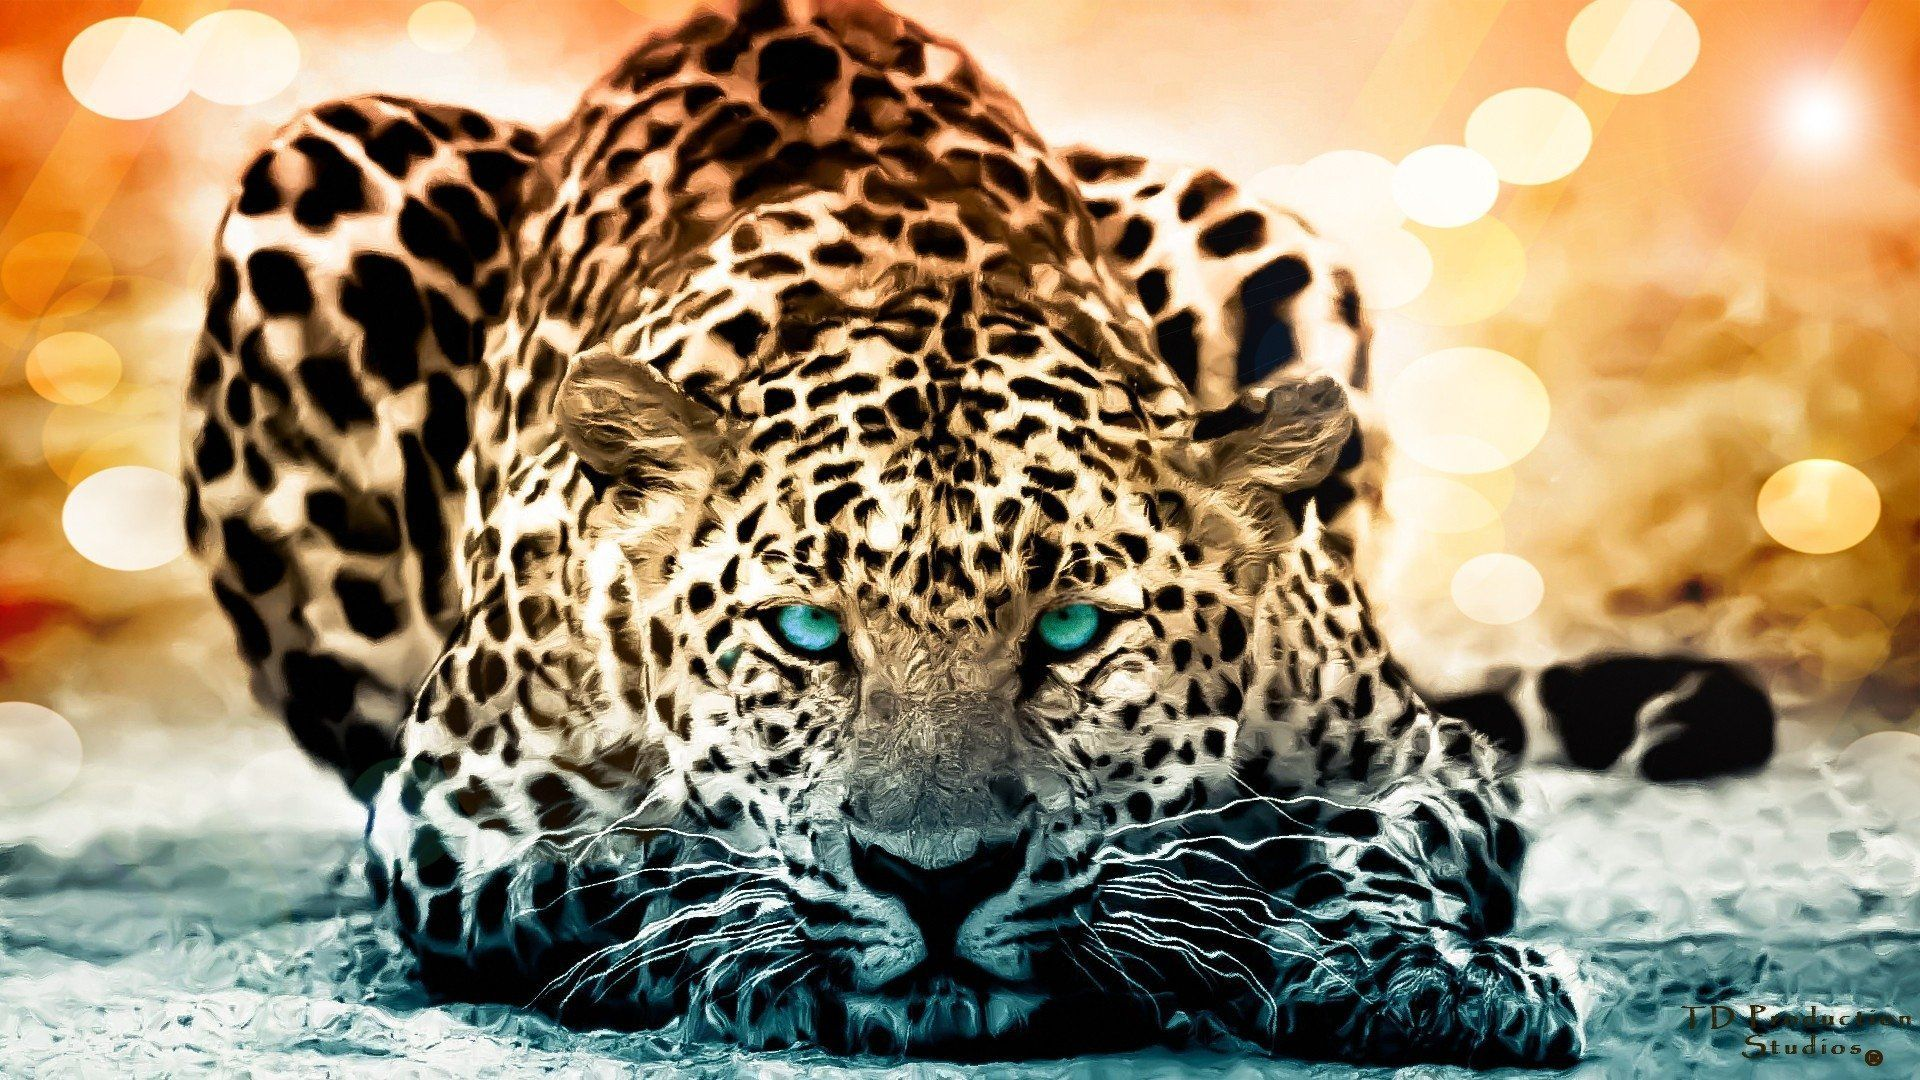 Exotic Animal Wallpapers - Top Free Exotic Animal Backgrounds ...